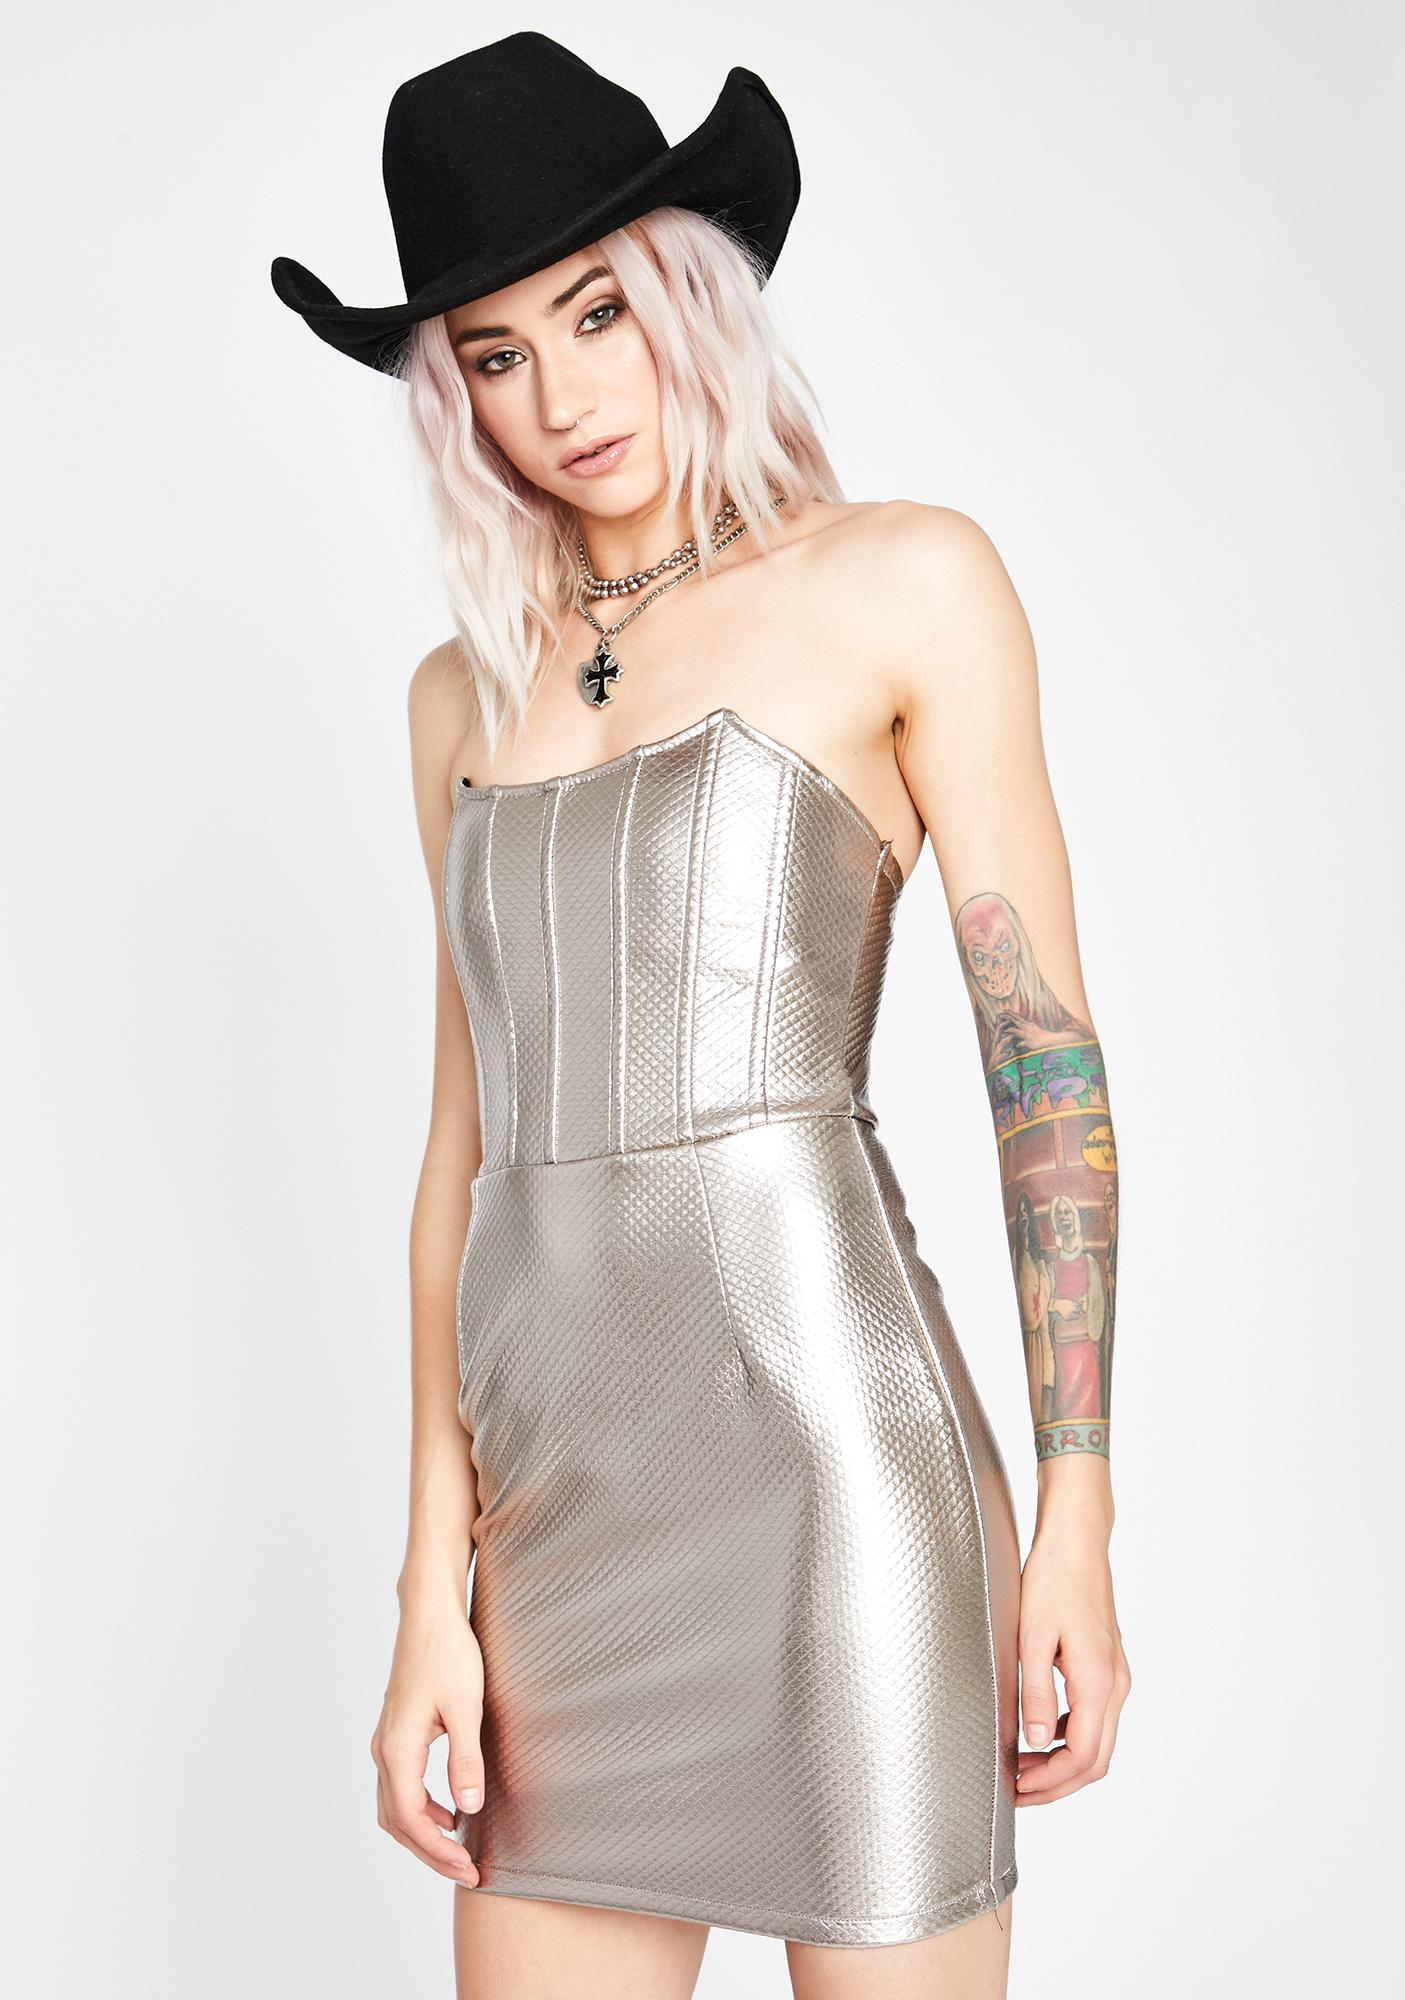 Slate Wicked Winds Corset Dress